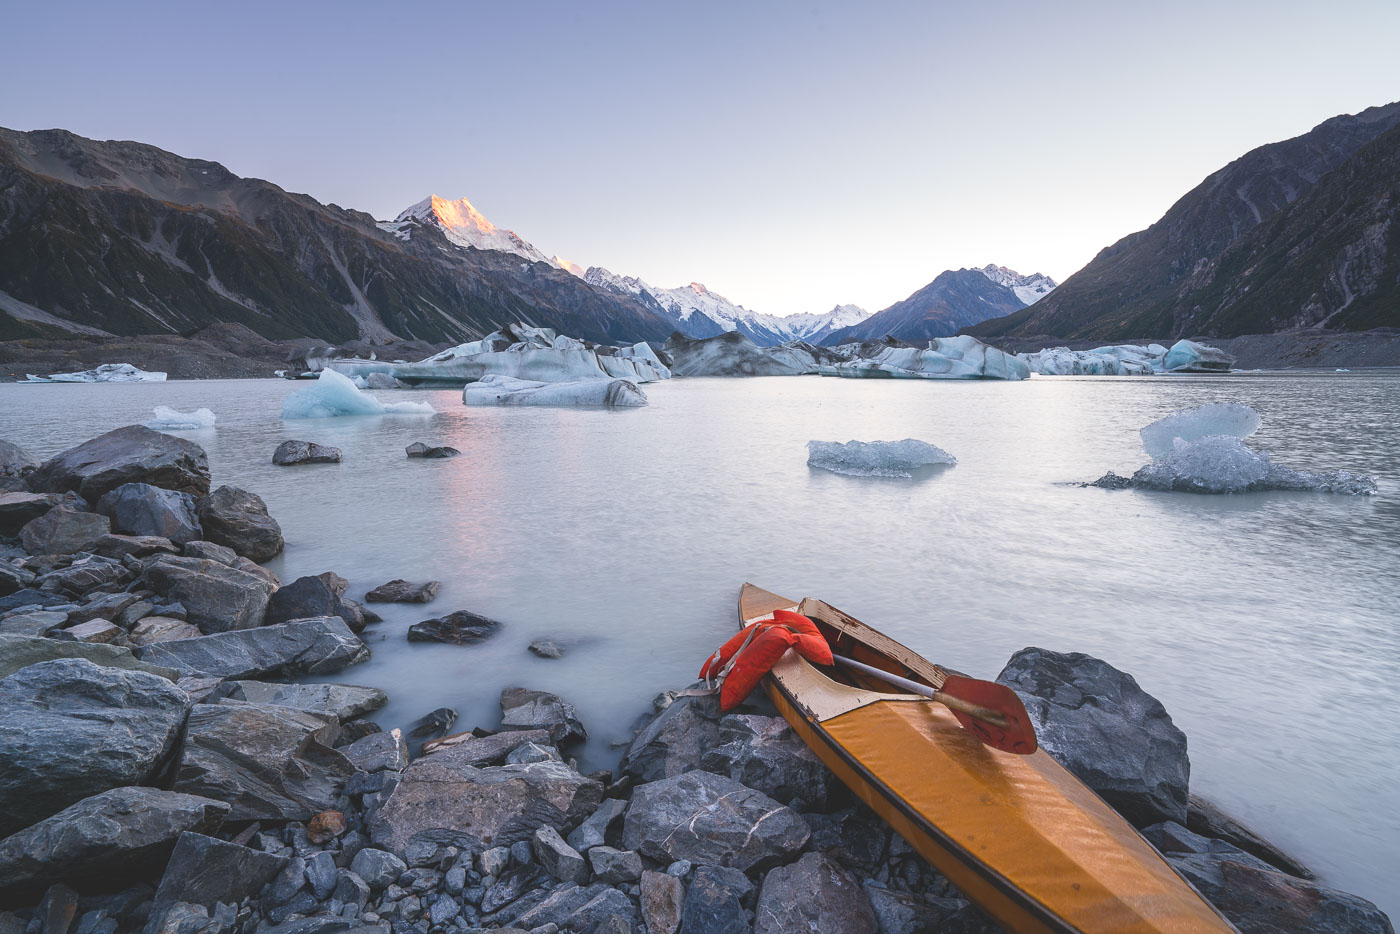 Kayak on the shores of Tasman Lake with Mount Cook in the background at sunrise